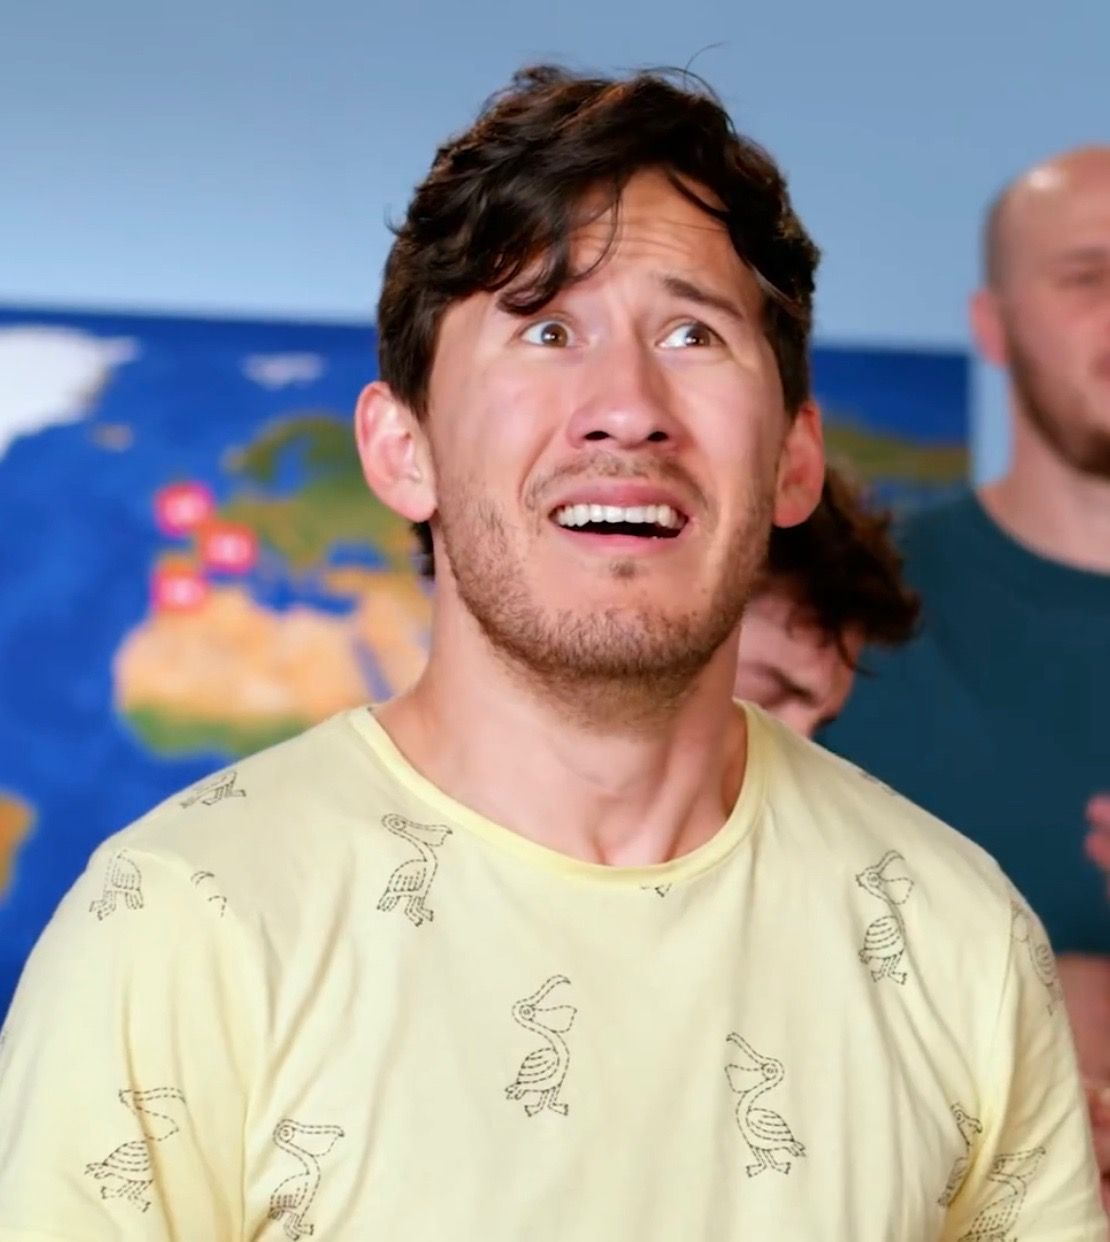 That face lol YouTube Rewind 2017